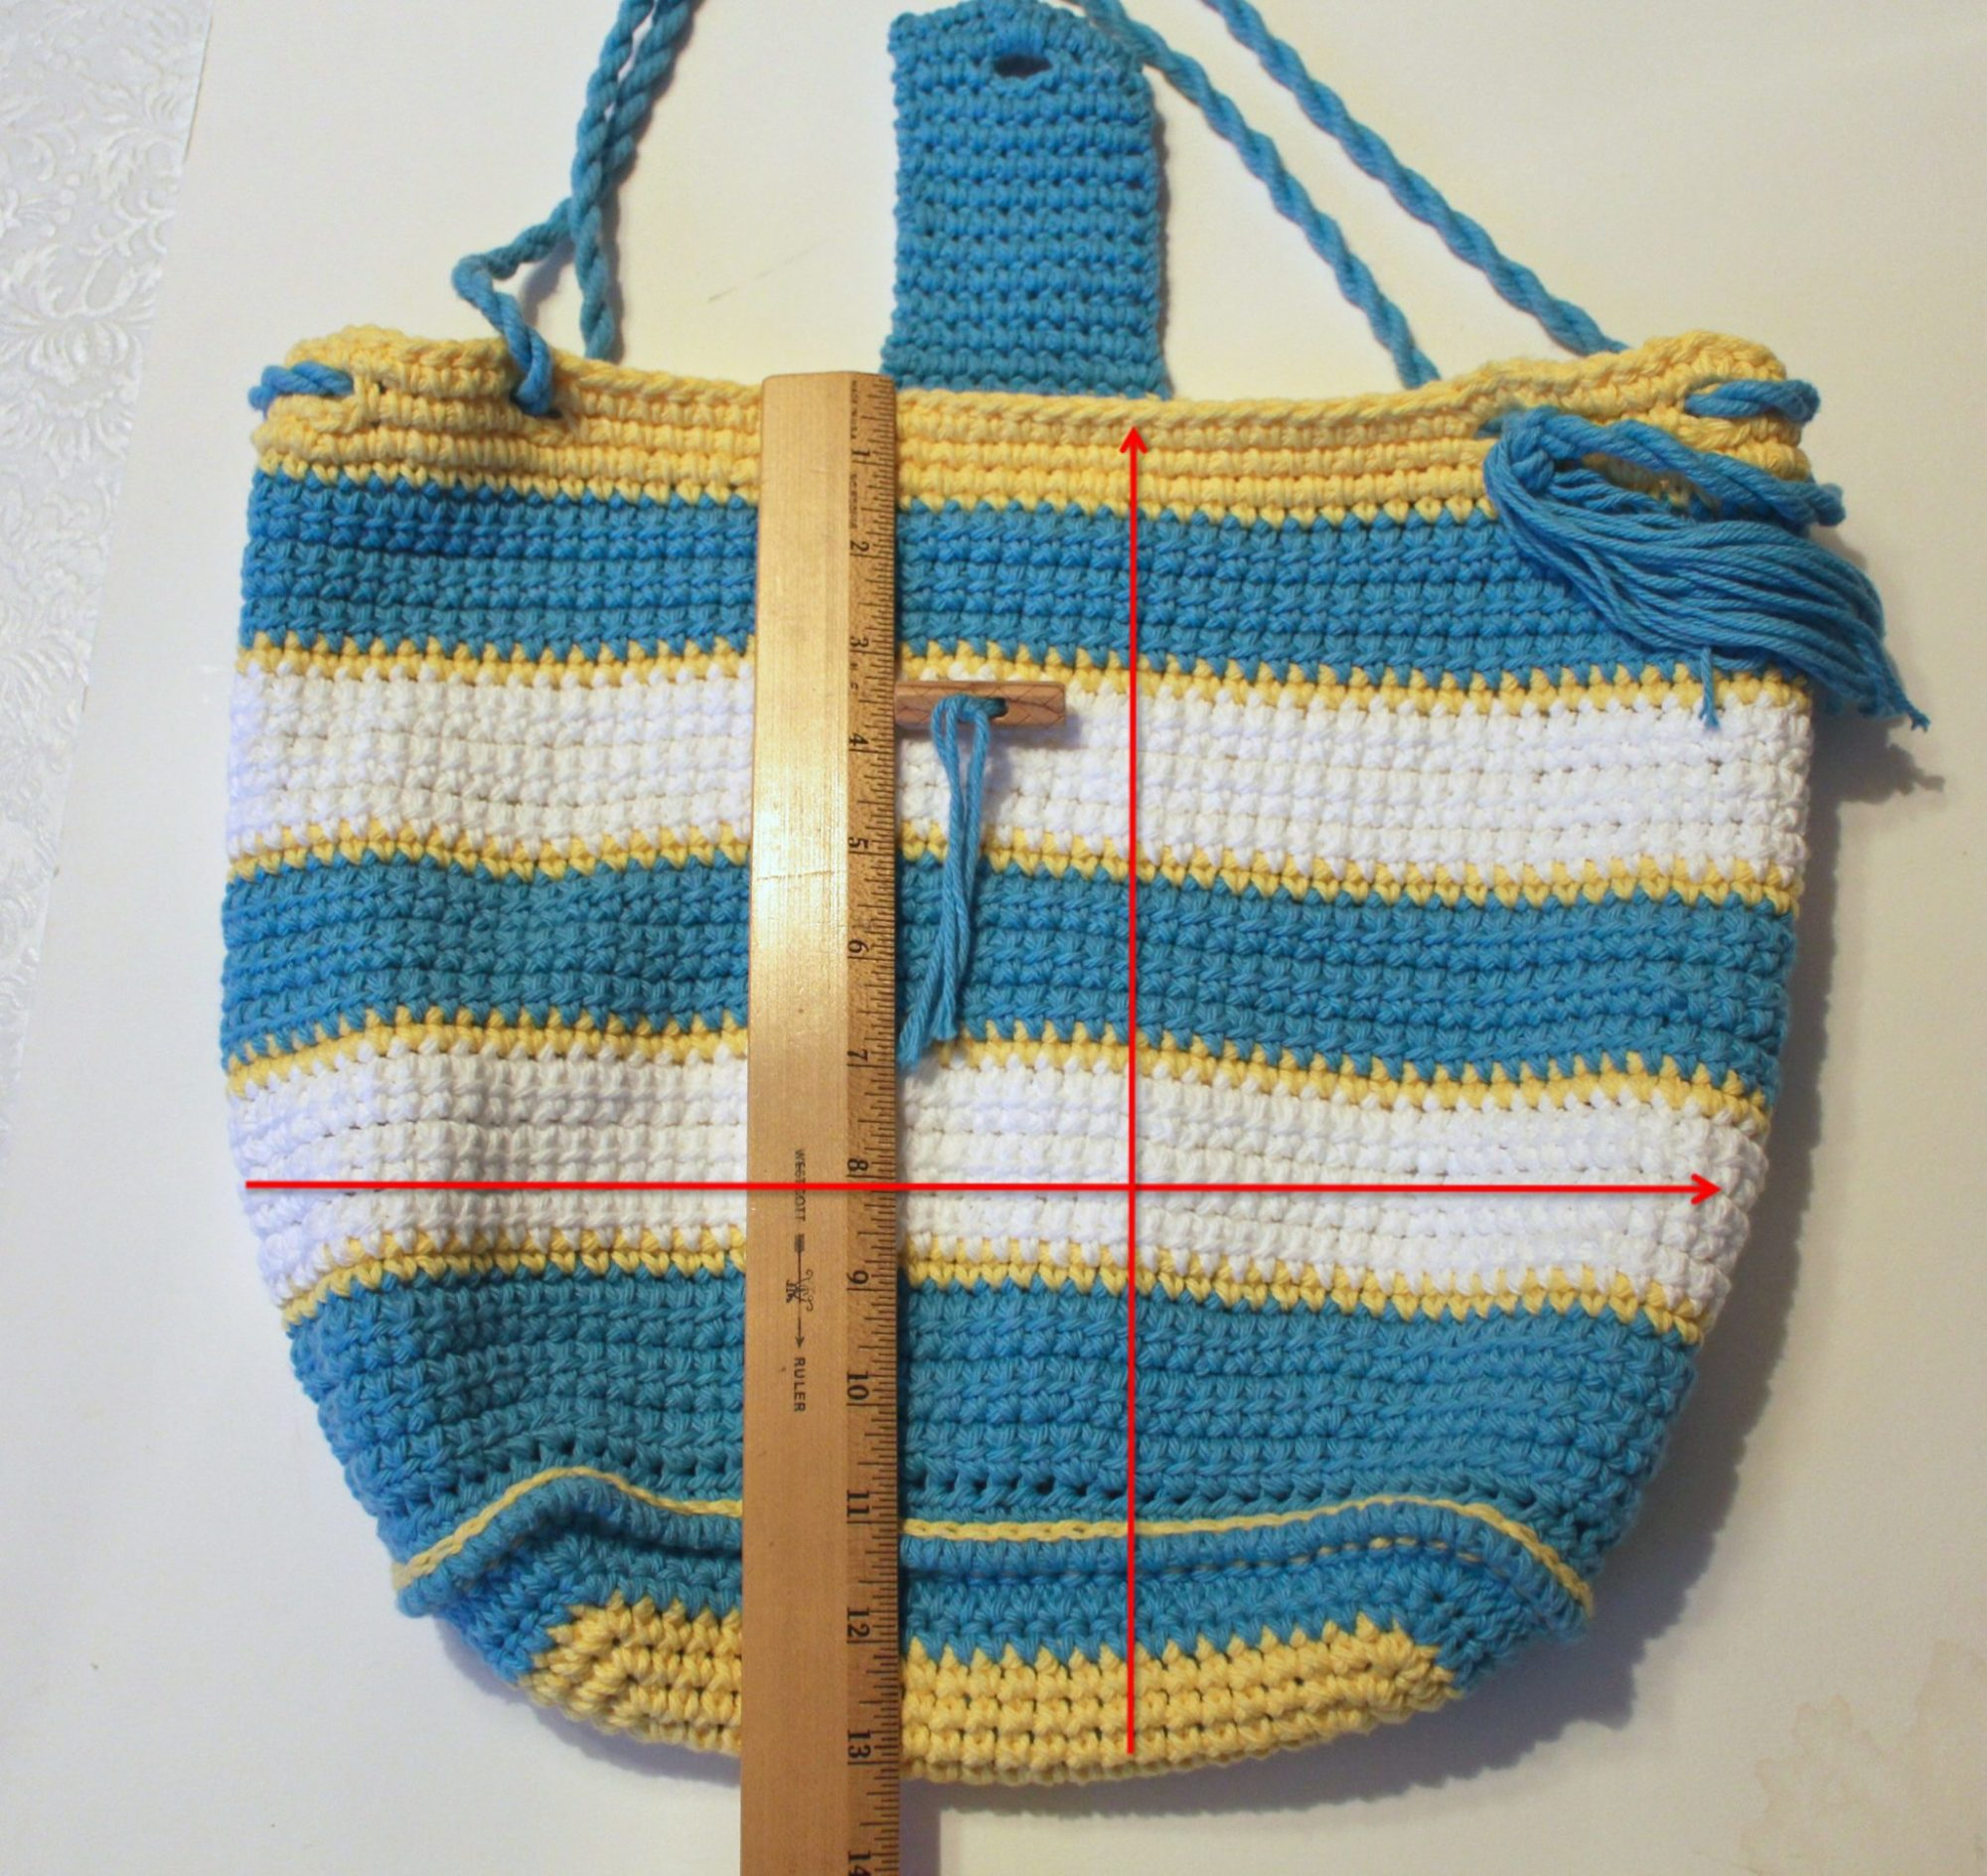 Lining Crochet Bag : Tutorial: How to Line a Crocheted Bag Pattern Paradise